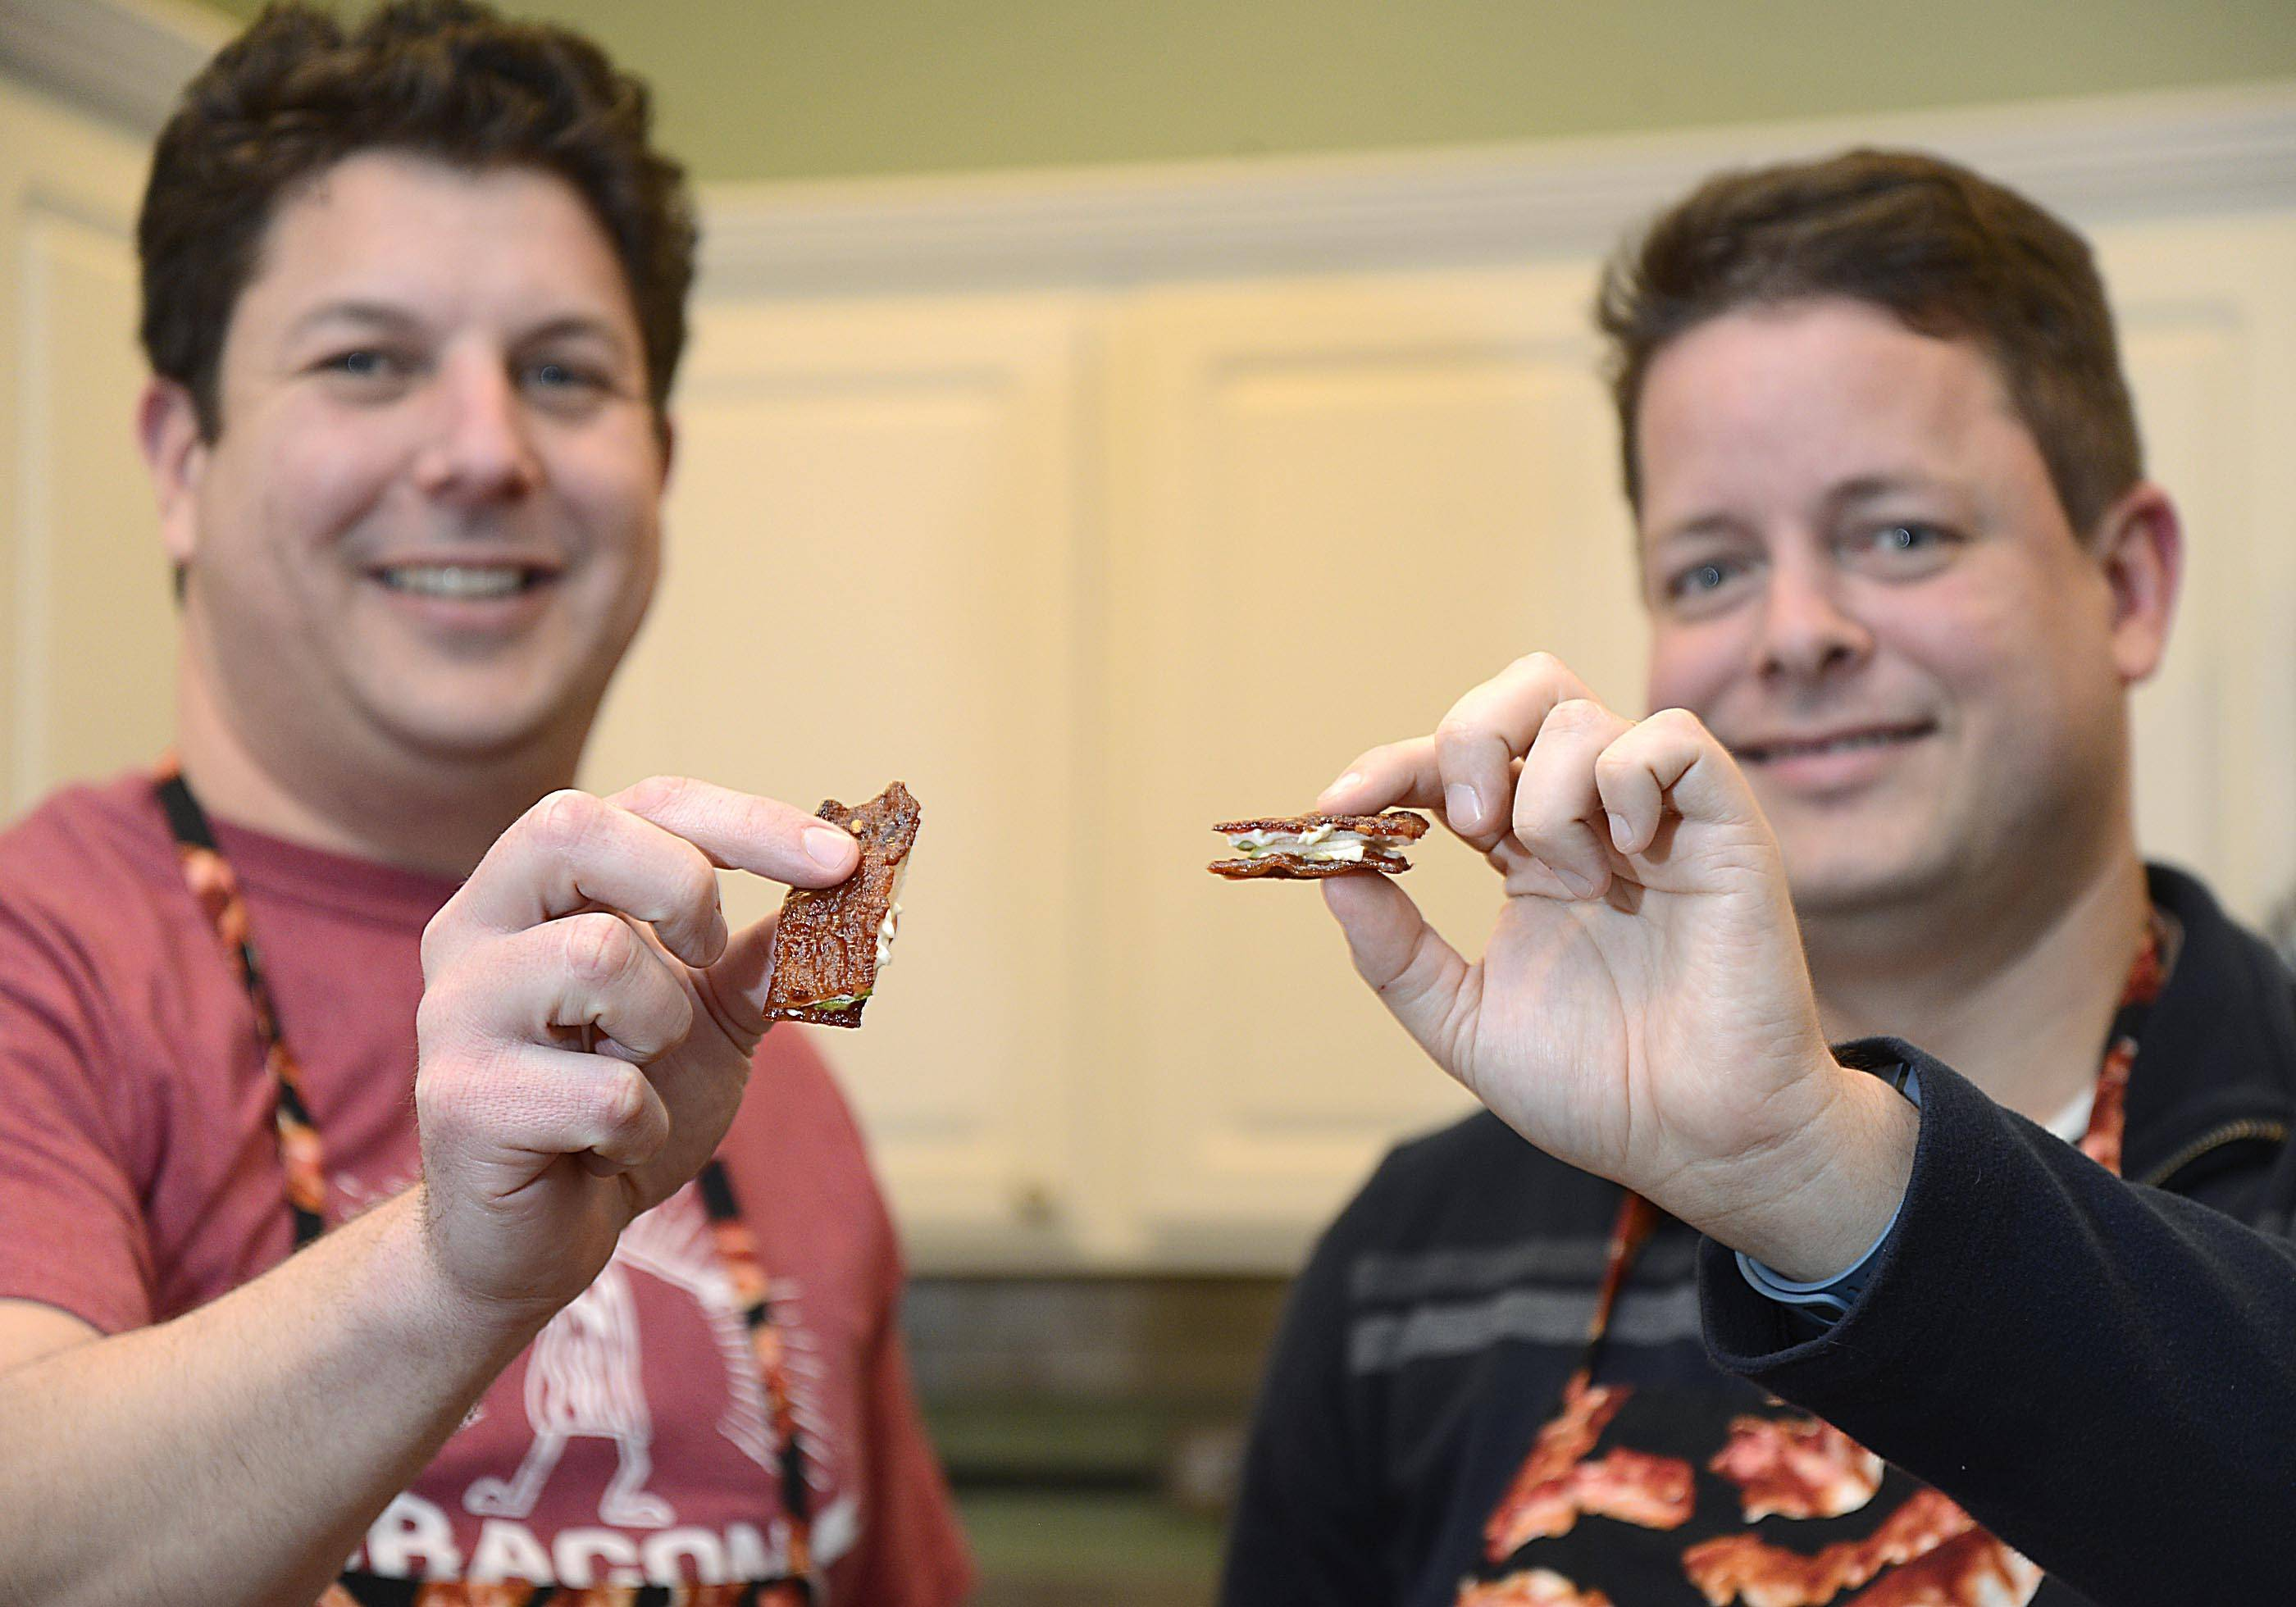 Todd Clement, left, and Ryan Cunningham show off their Sweet and Spicy Piggy Pearwich that earned them second place in their first Bacon Takedown in 2012.